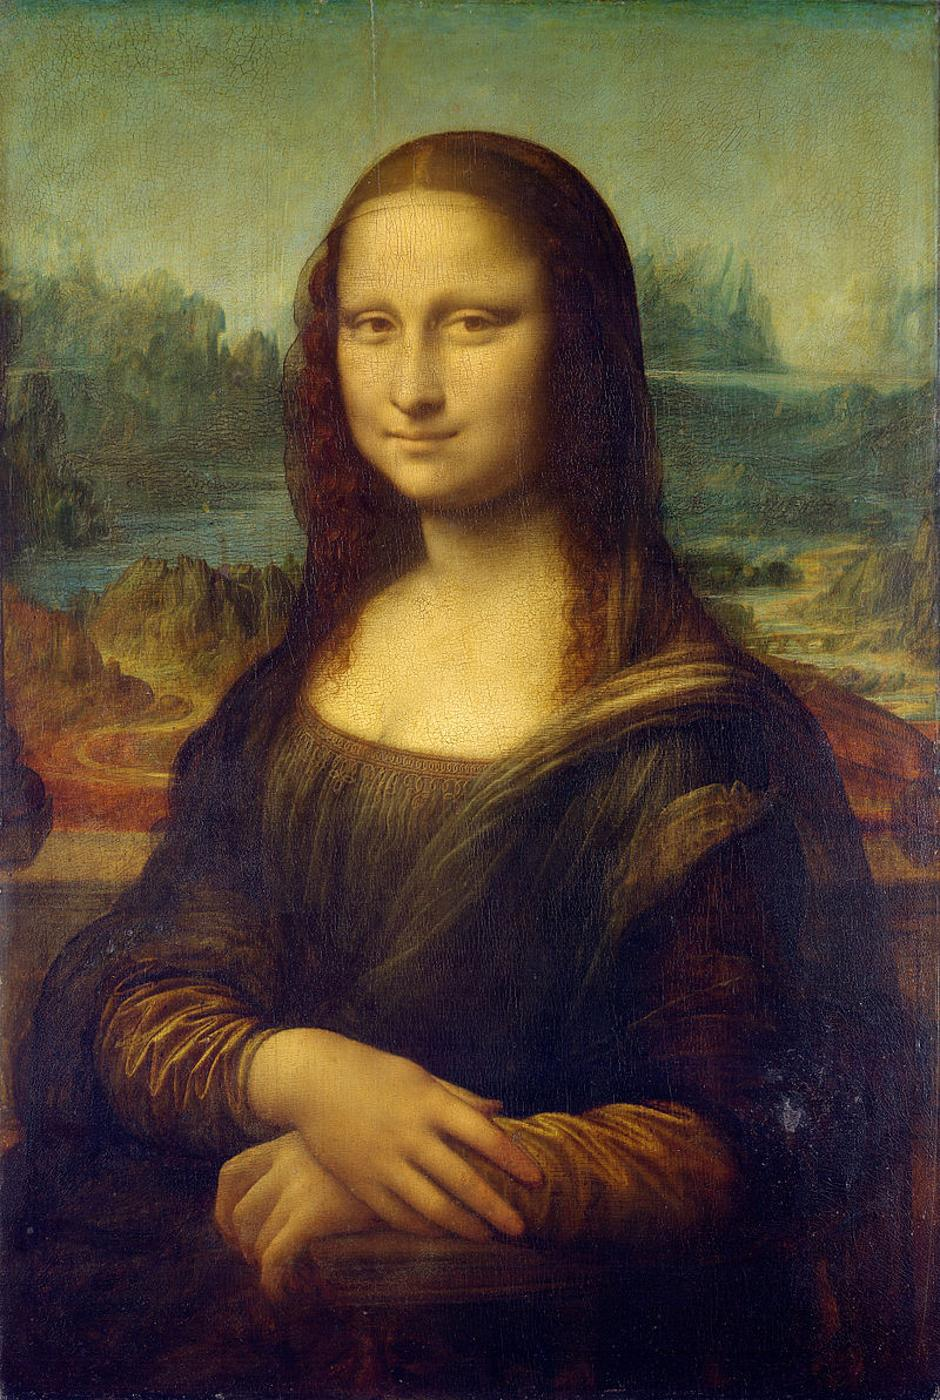 Mona Lisa | Author: Wikipedia